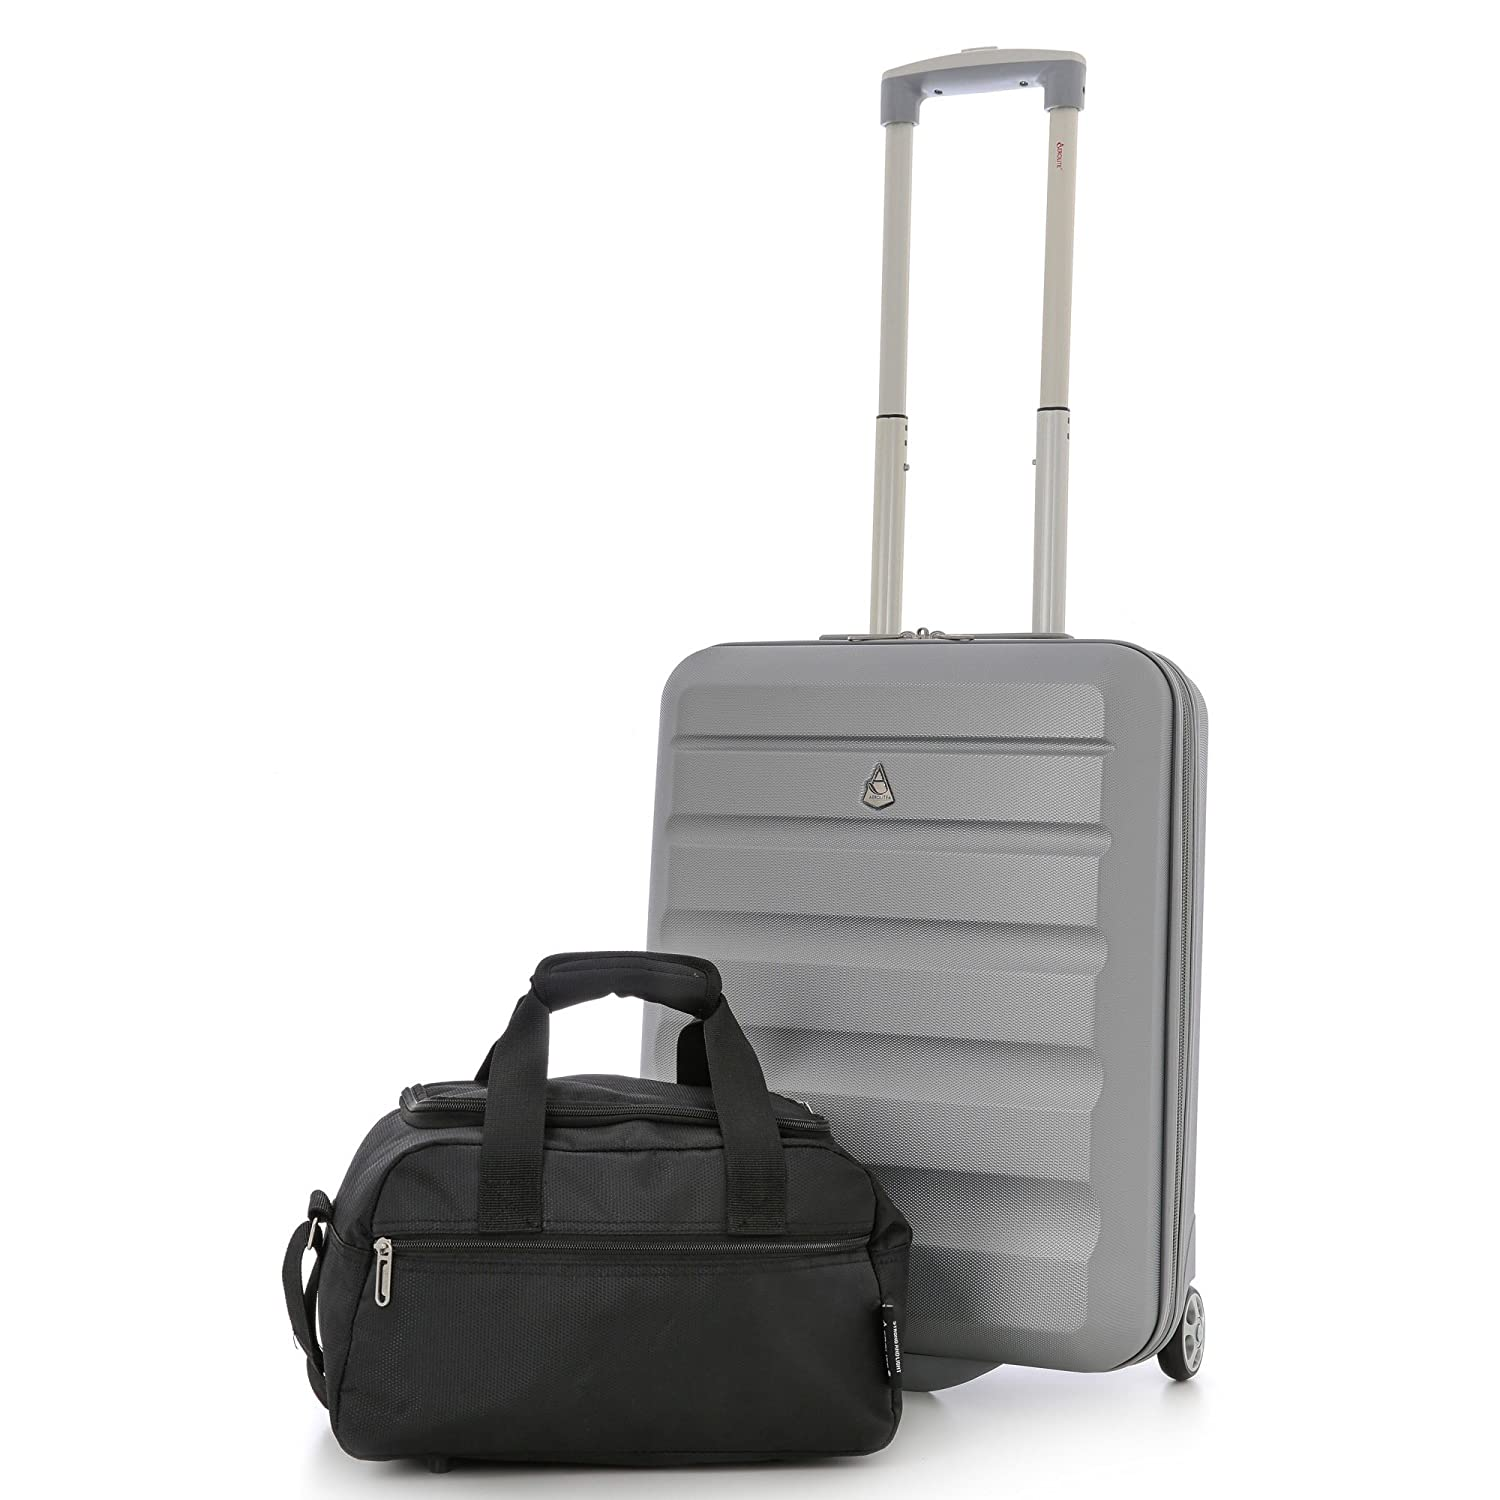 Black x2 Aerolite Set of 2-35x20x20cm Maximum Ryanair Hand Luggage Cabin Holdall Bag Carry on for Free with Ryanair!